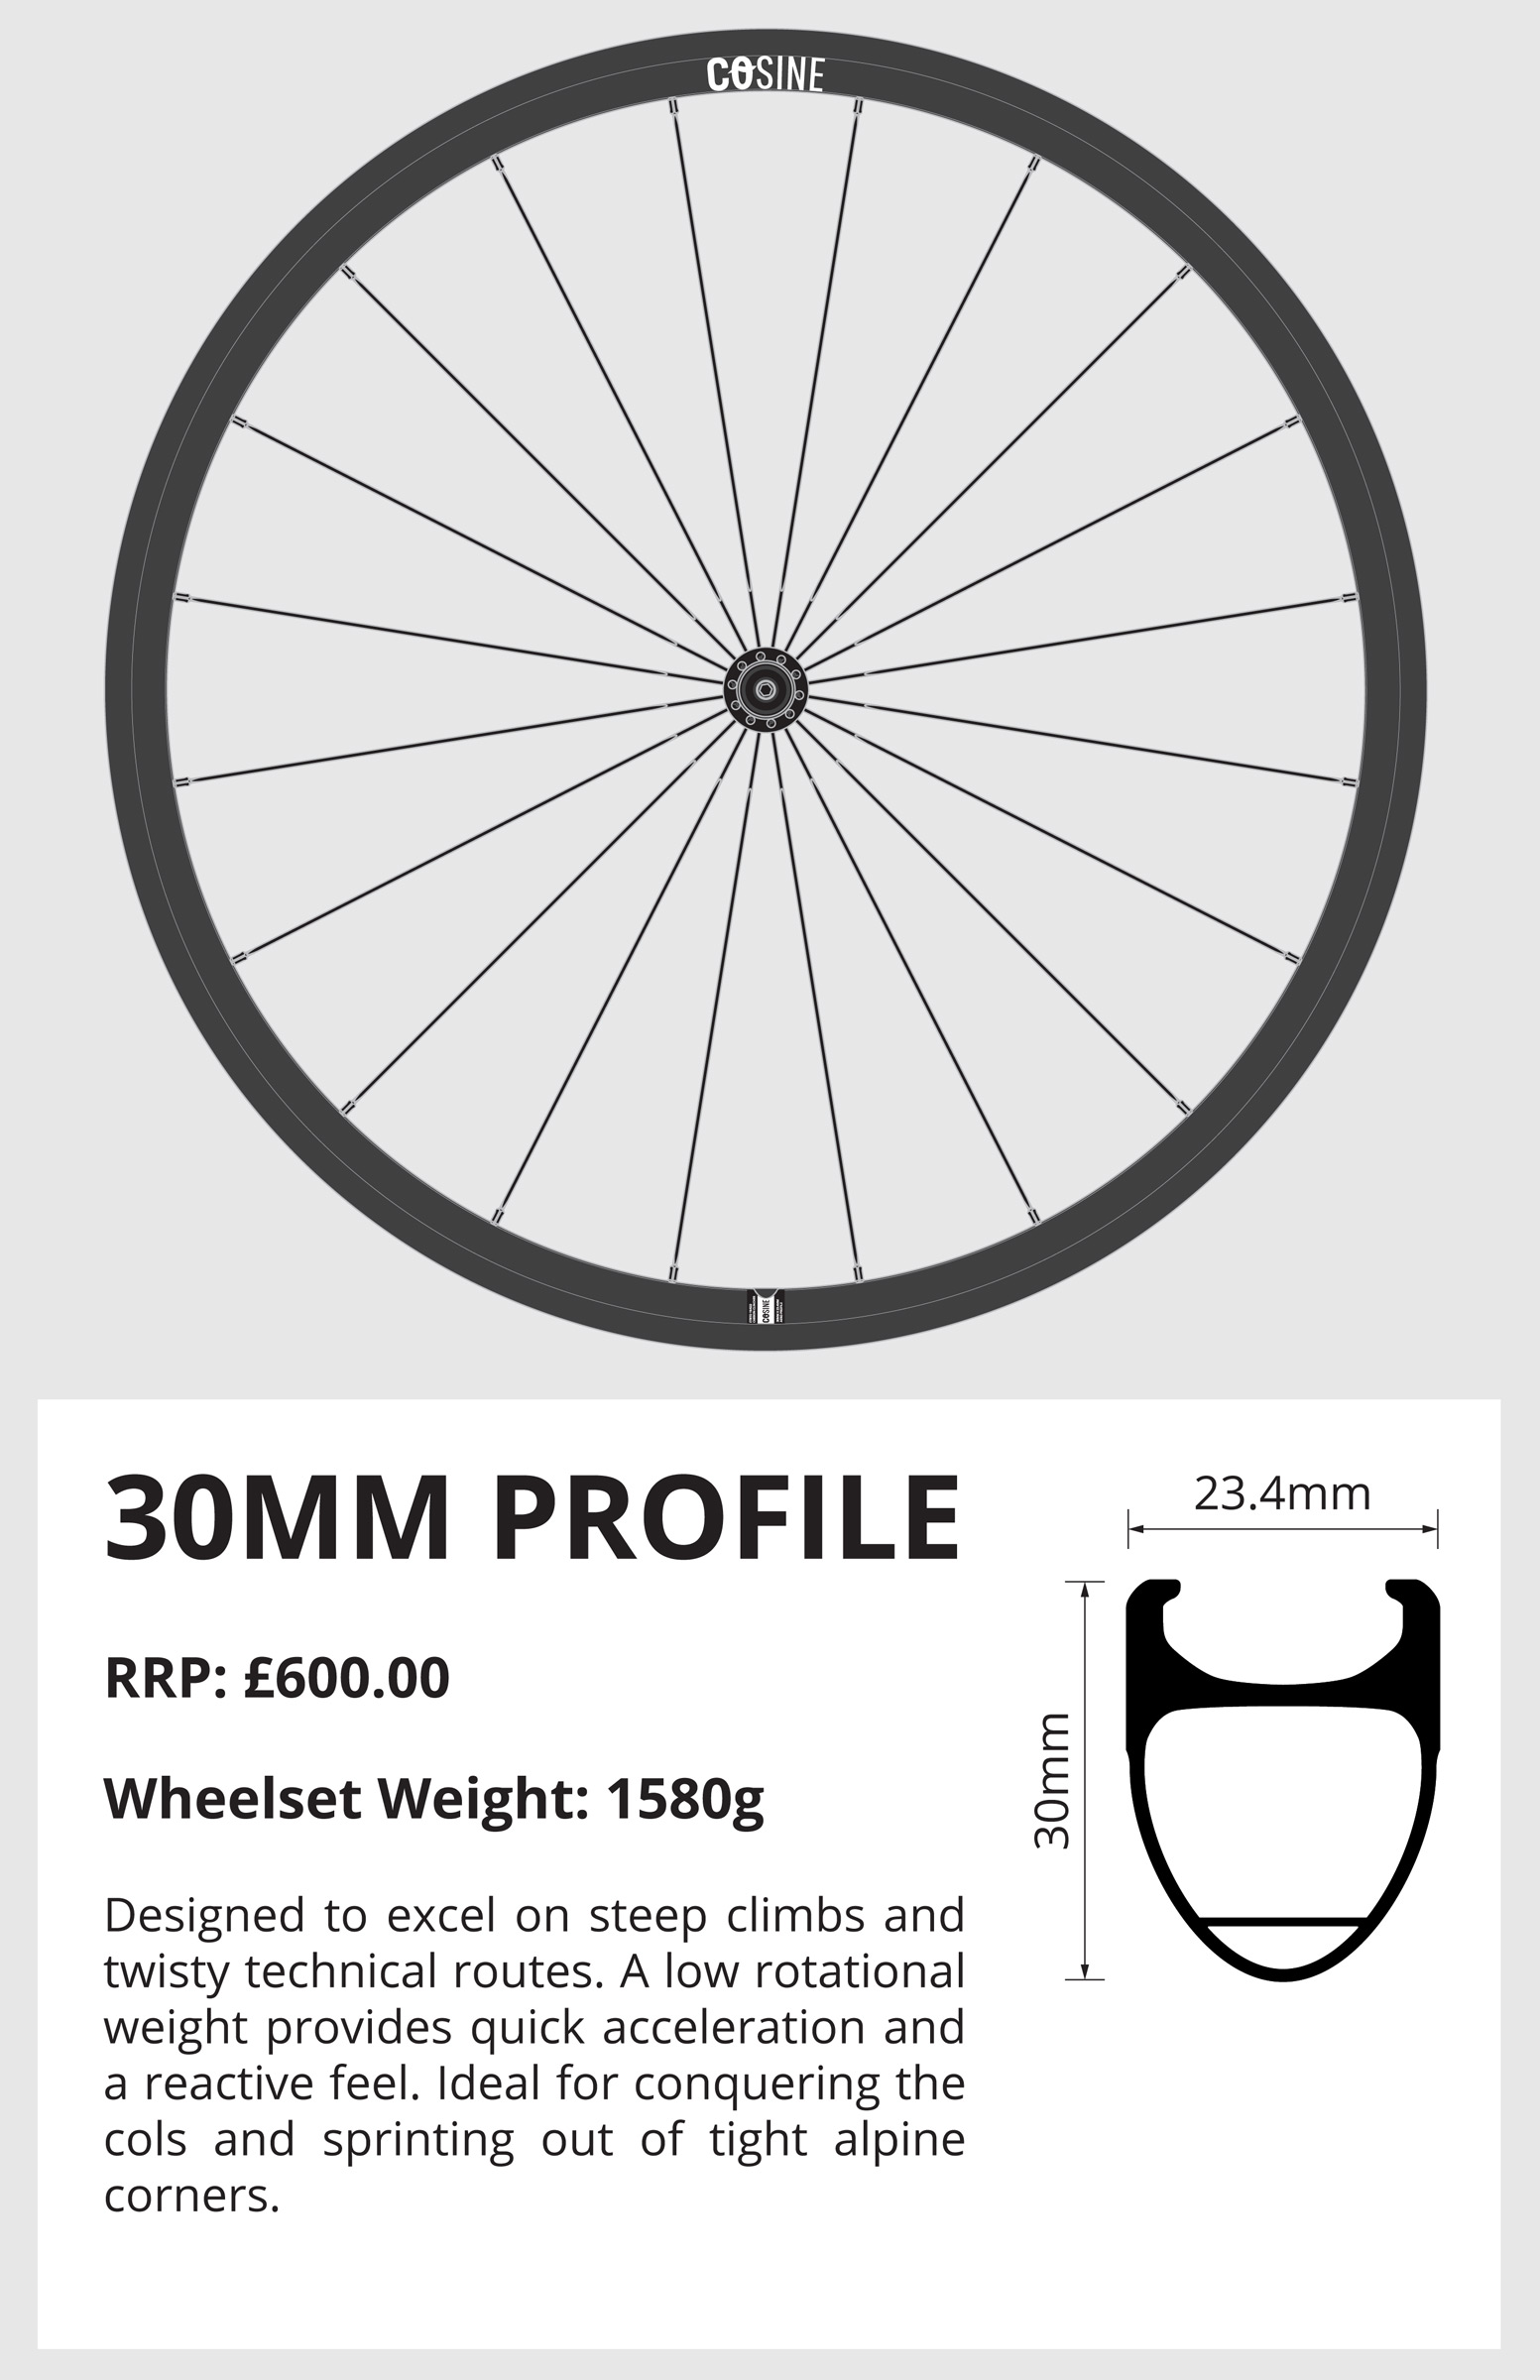 new cosine brand debuts aluminum carbon road wheels from wiggle bikerumor. Black Bedroom Furniture Sets. Home Design Ideas